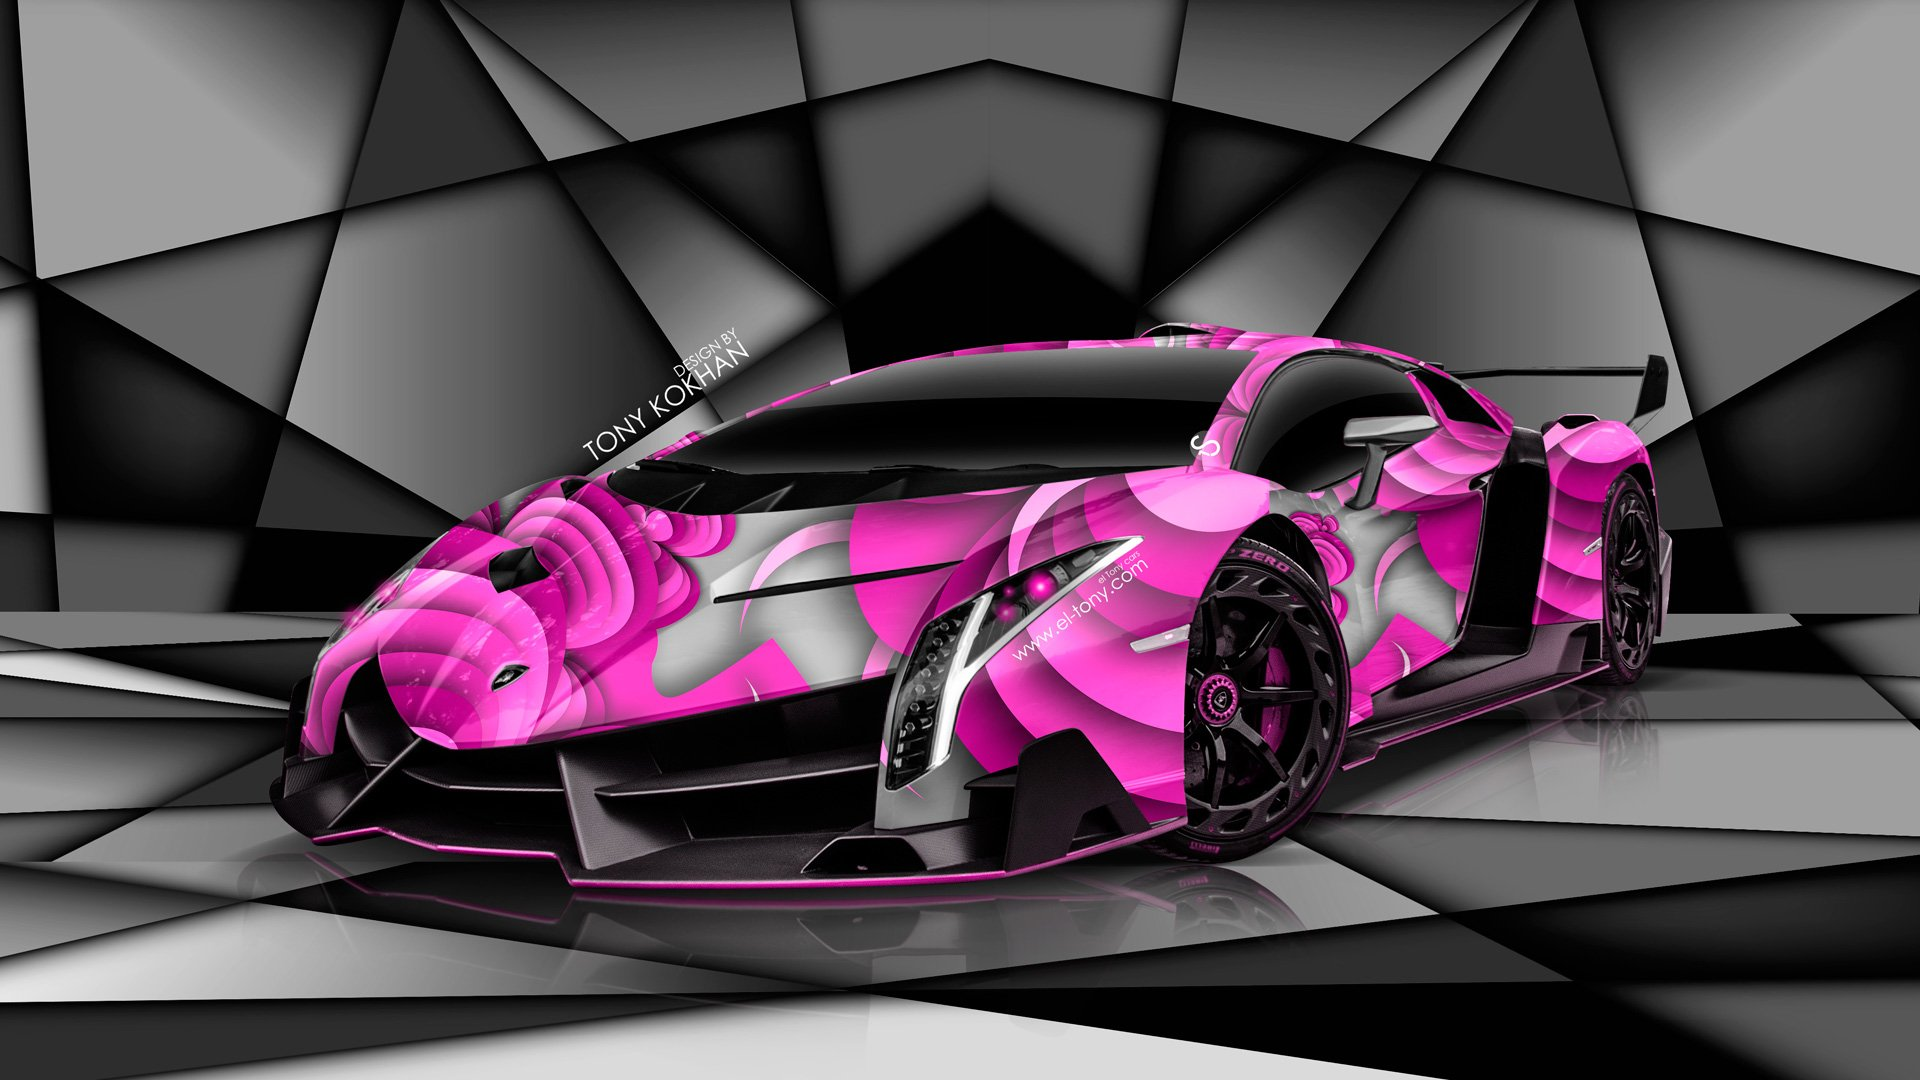 1920x1080 Lamborghini Veneno Super Aerography Car 2014 Pink Colors HD Wallpapers  .